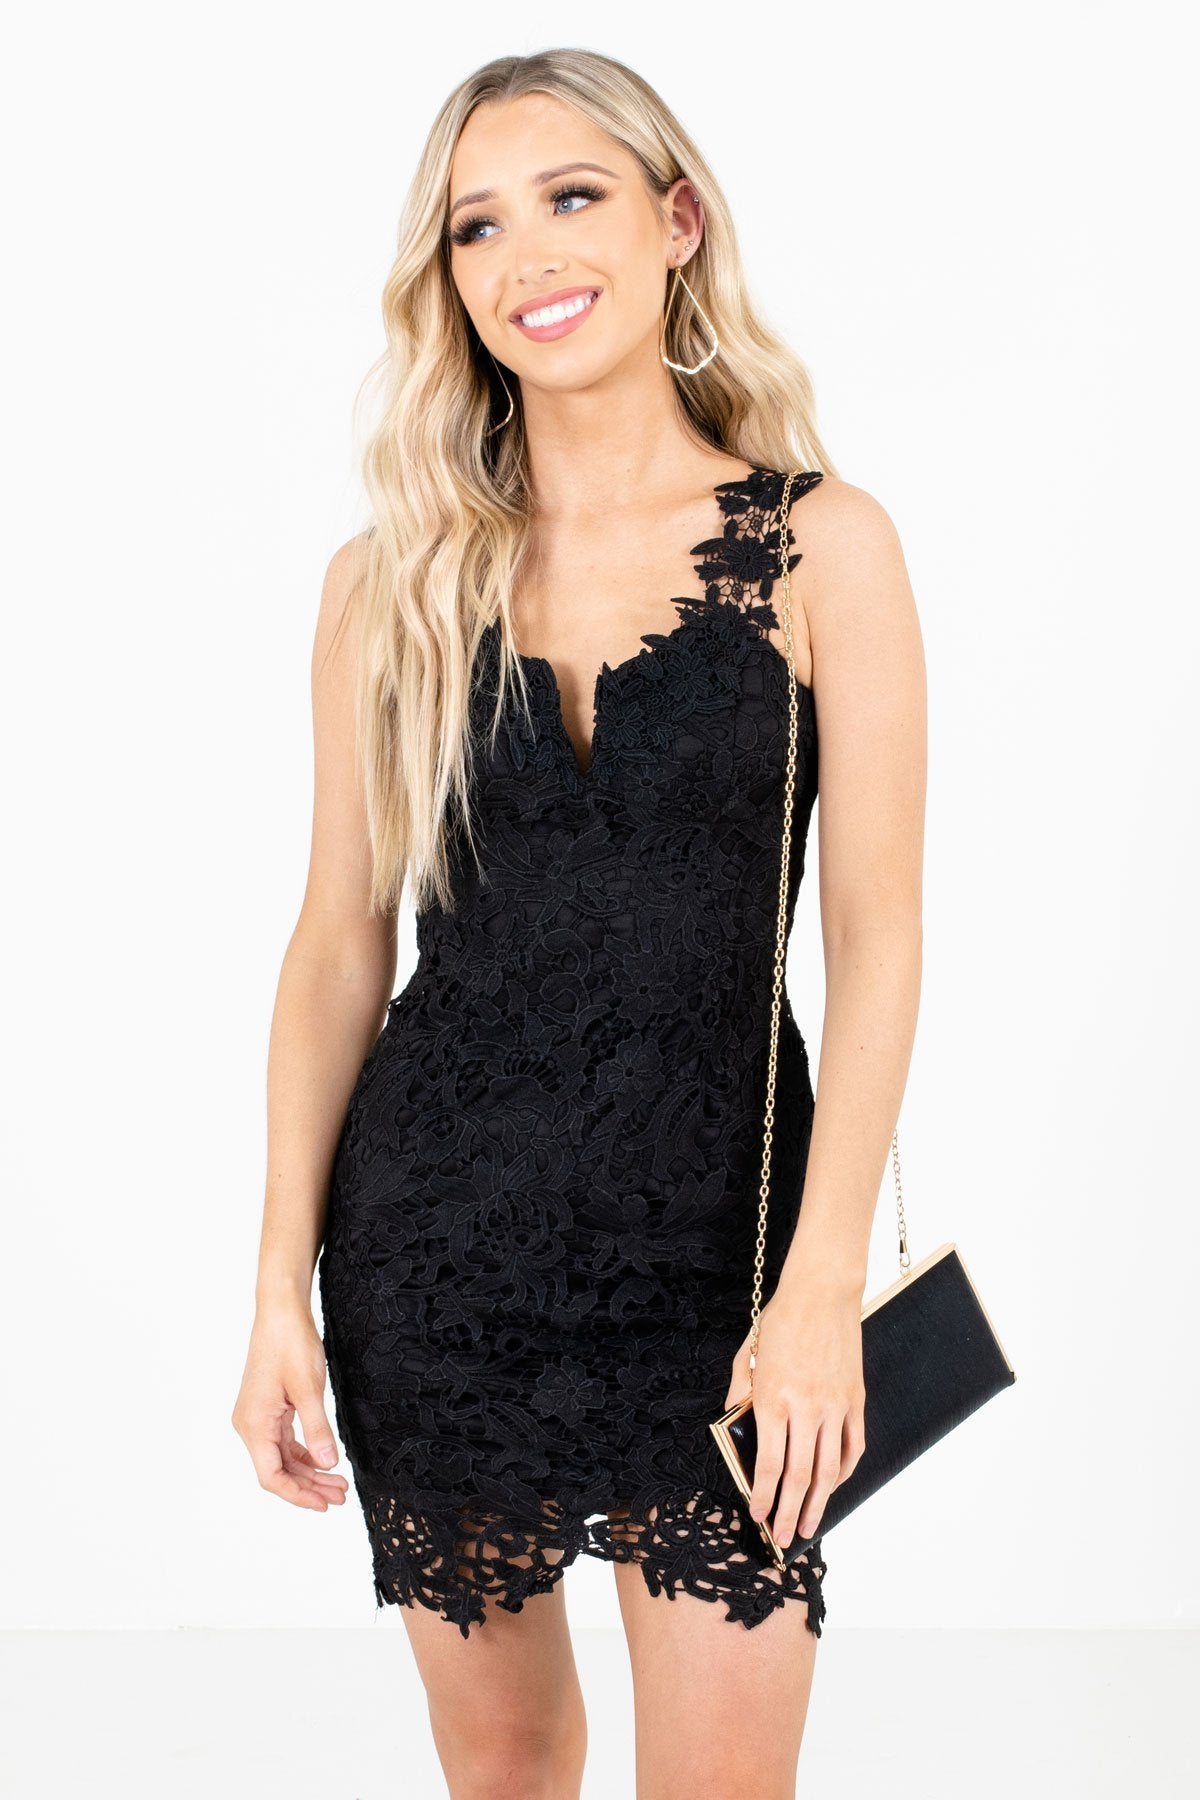 Black Crochet Floral Lace Overlay Mini Dresses Affordable Online Boutique